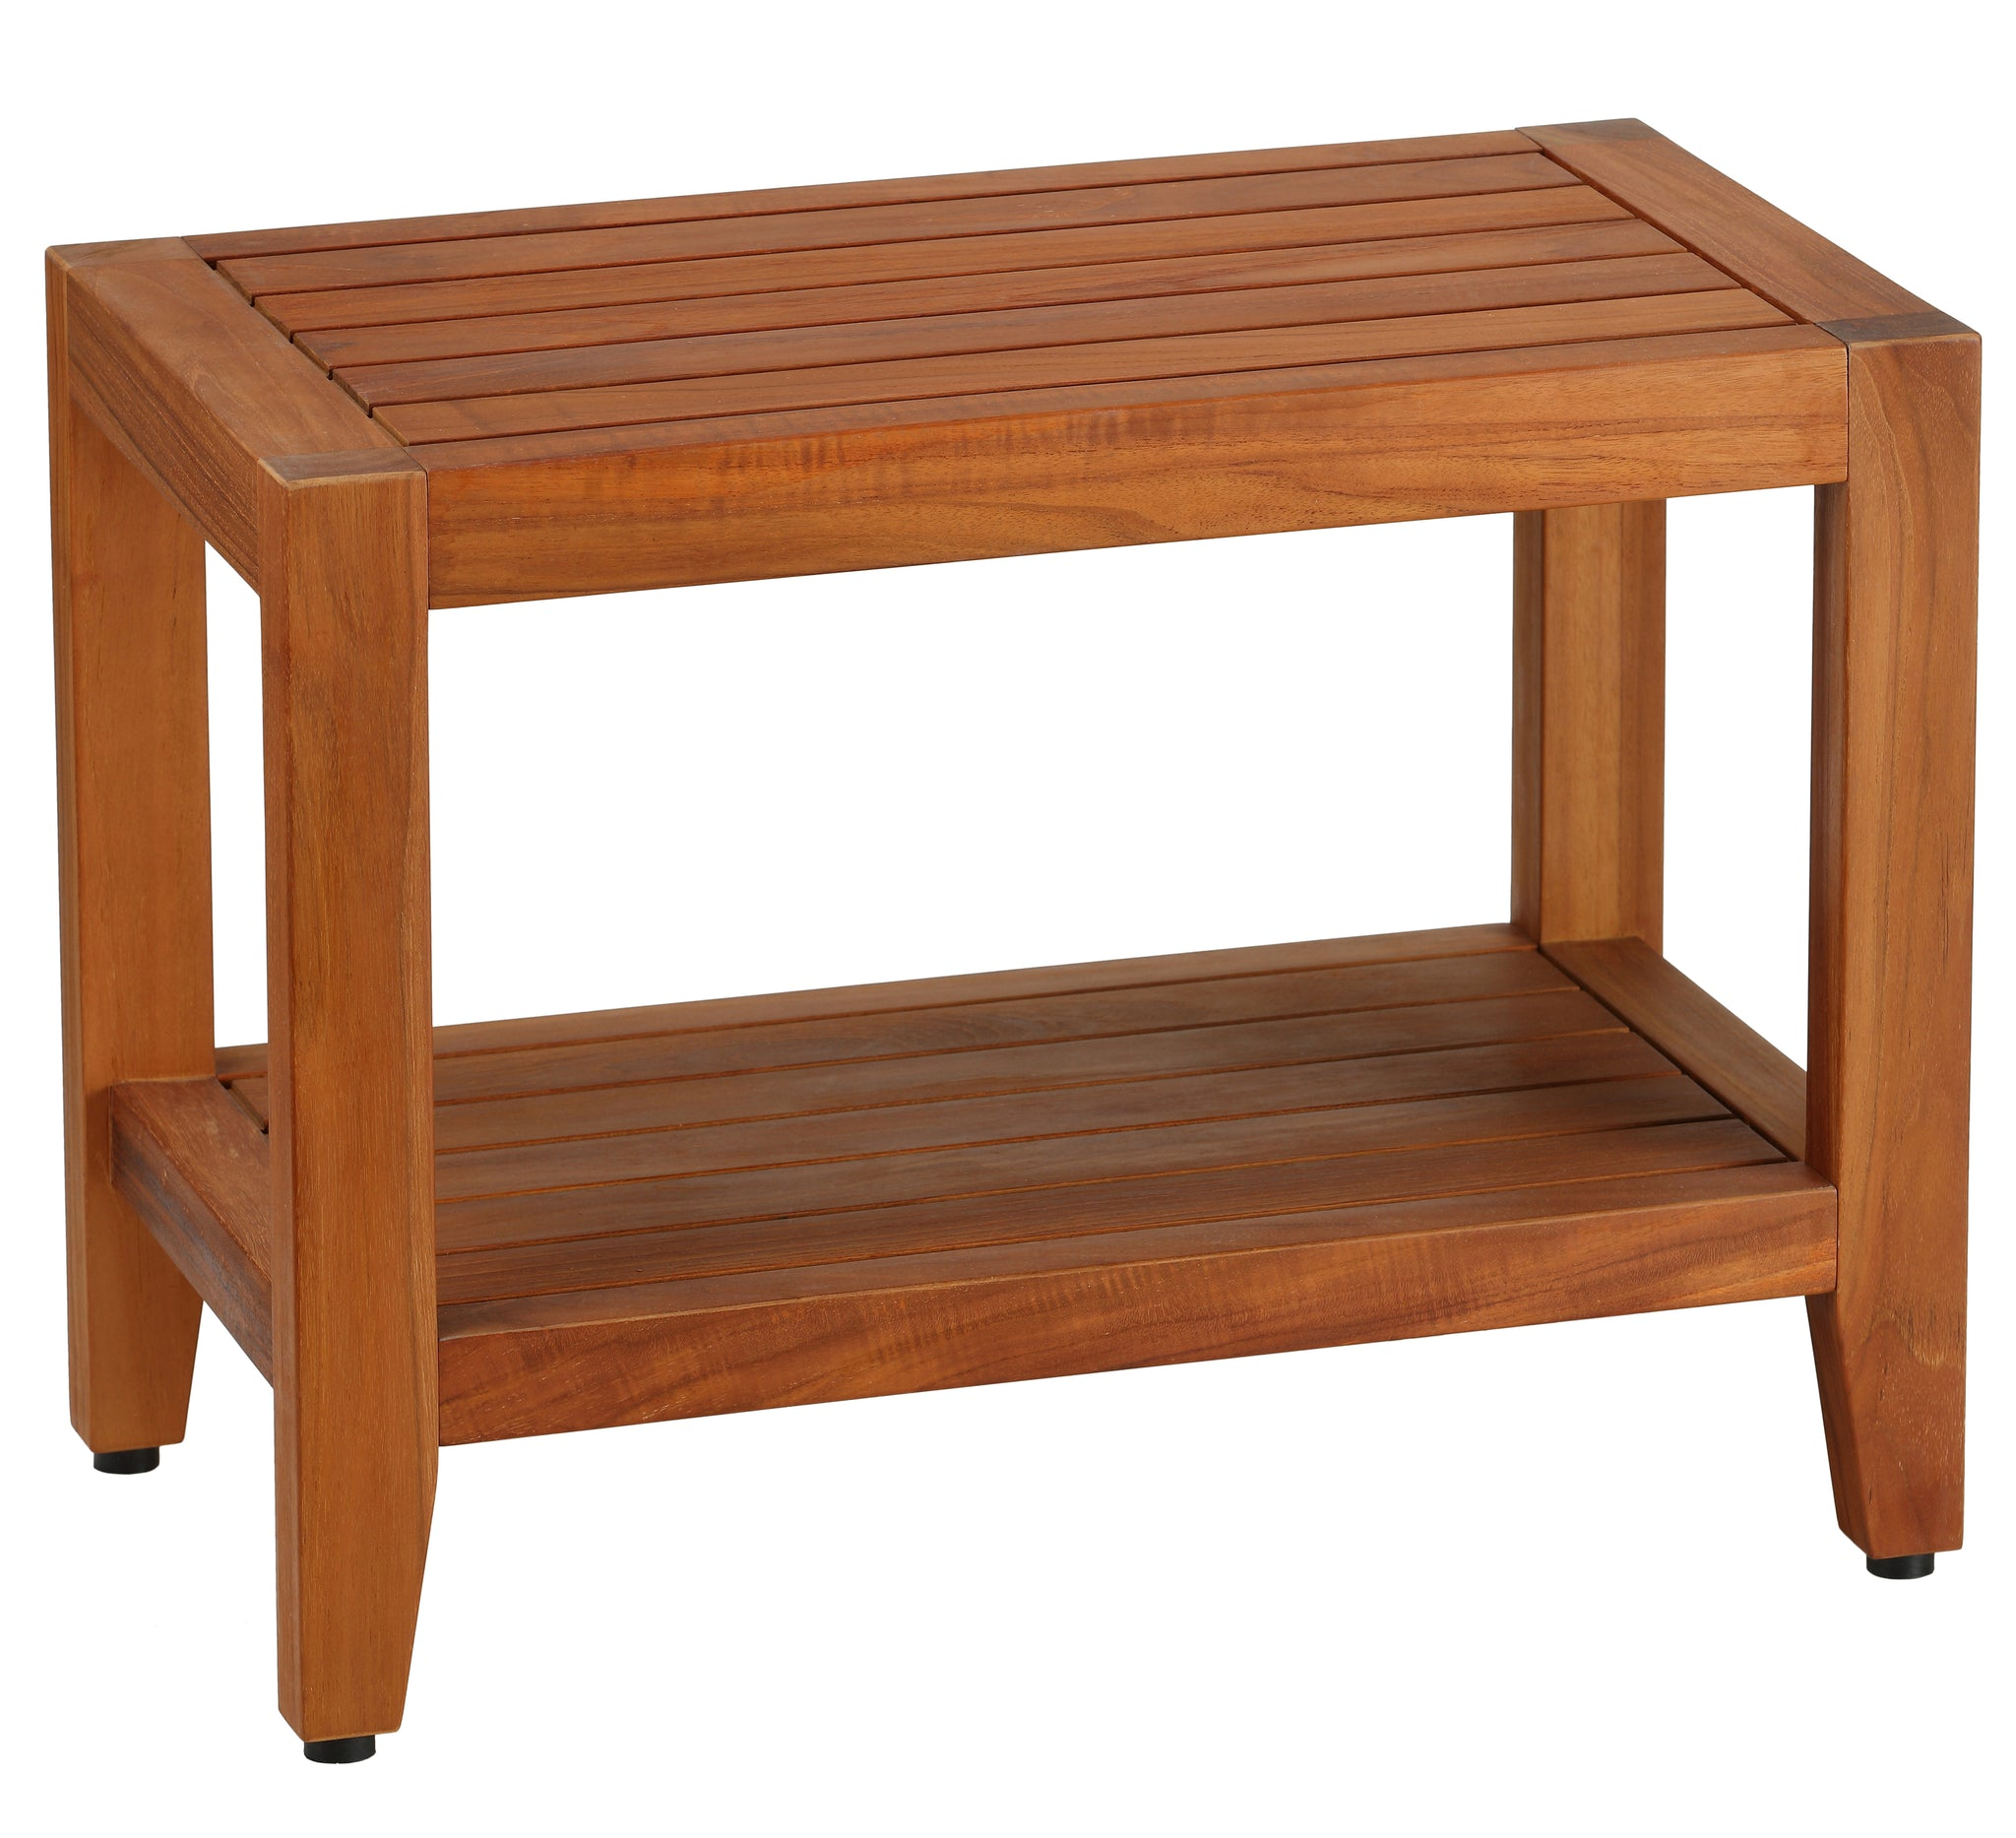 "Bare Decor Serenity Spa 24"" Bench with Shelf in Solid Teak Wood"